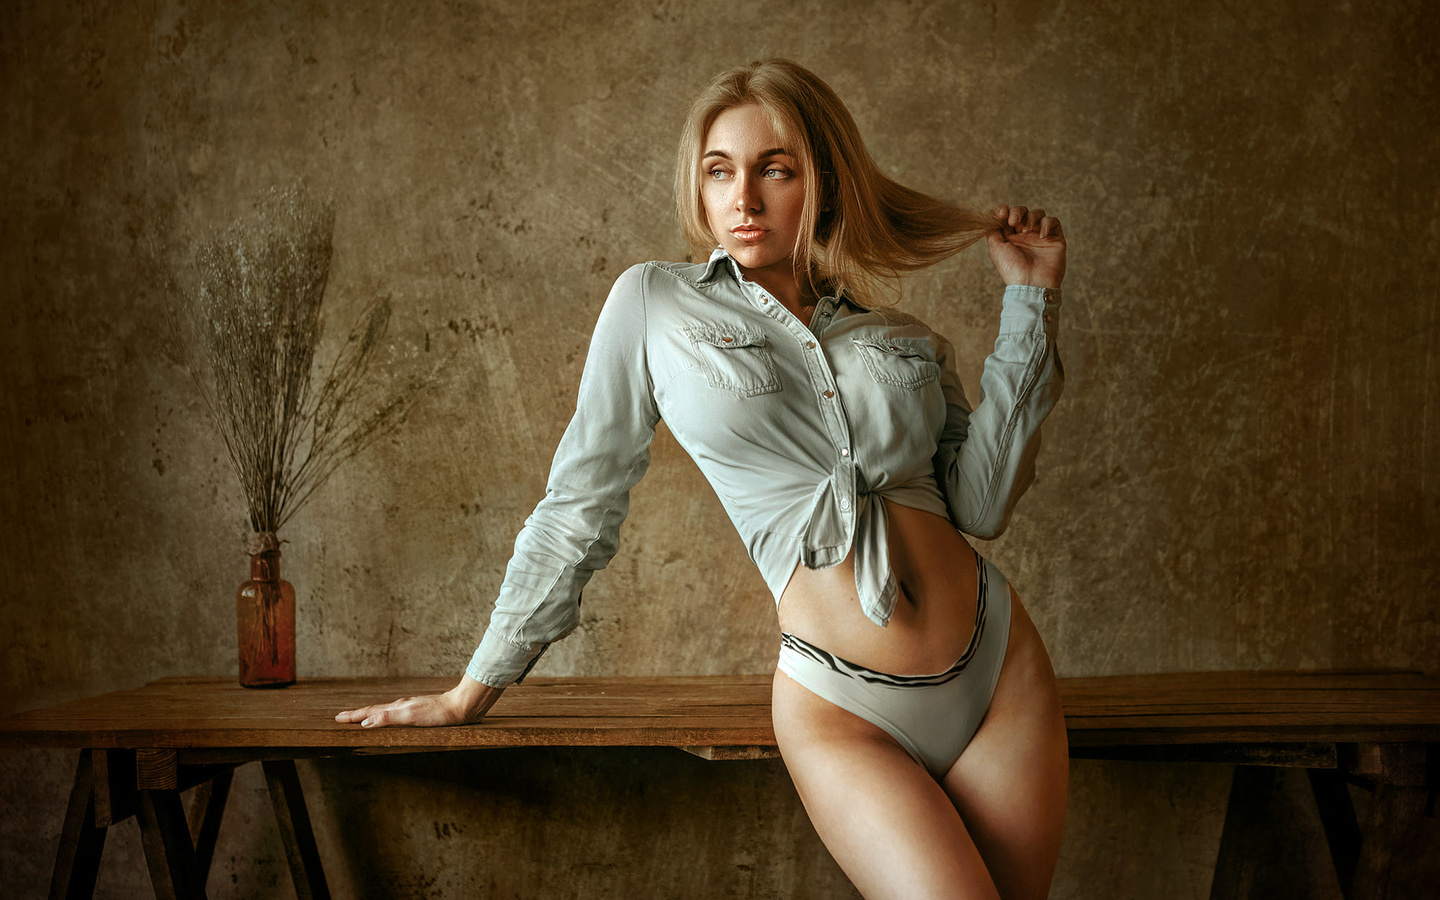 women, blonde, panties, table, belly, brunette, women indoors, wall, shirt, hands in hair, альберт лесной,albert lesnoy